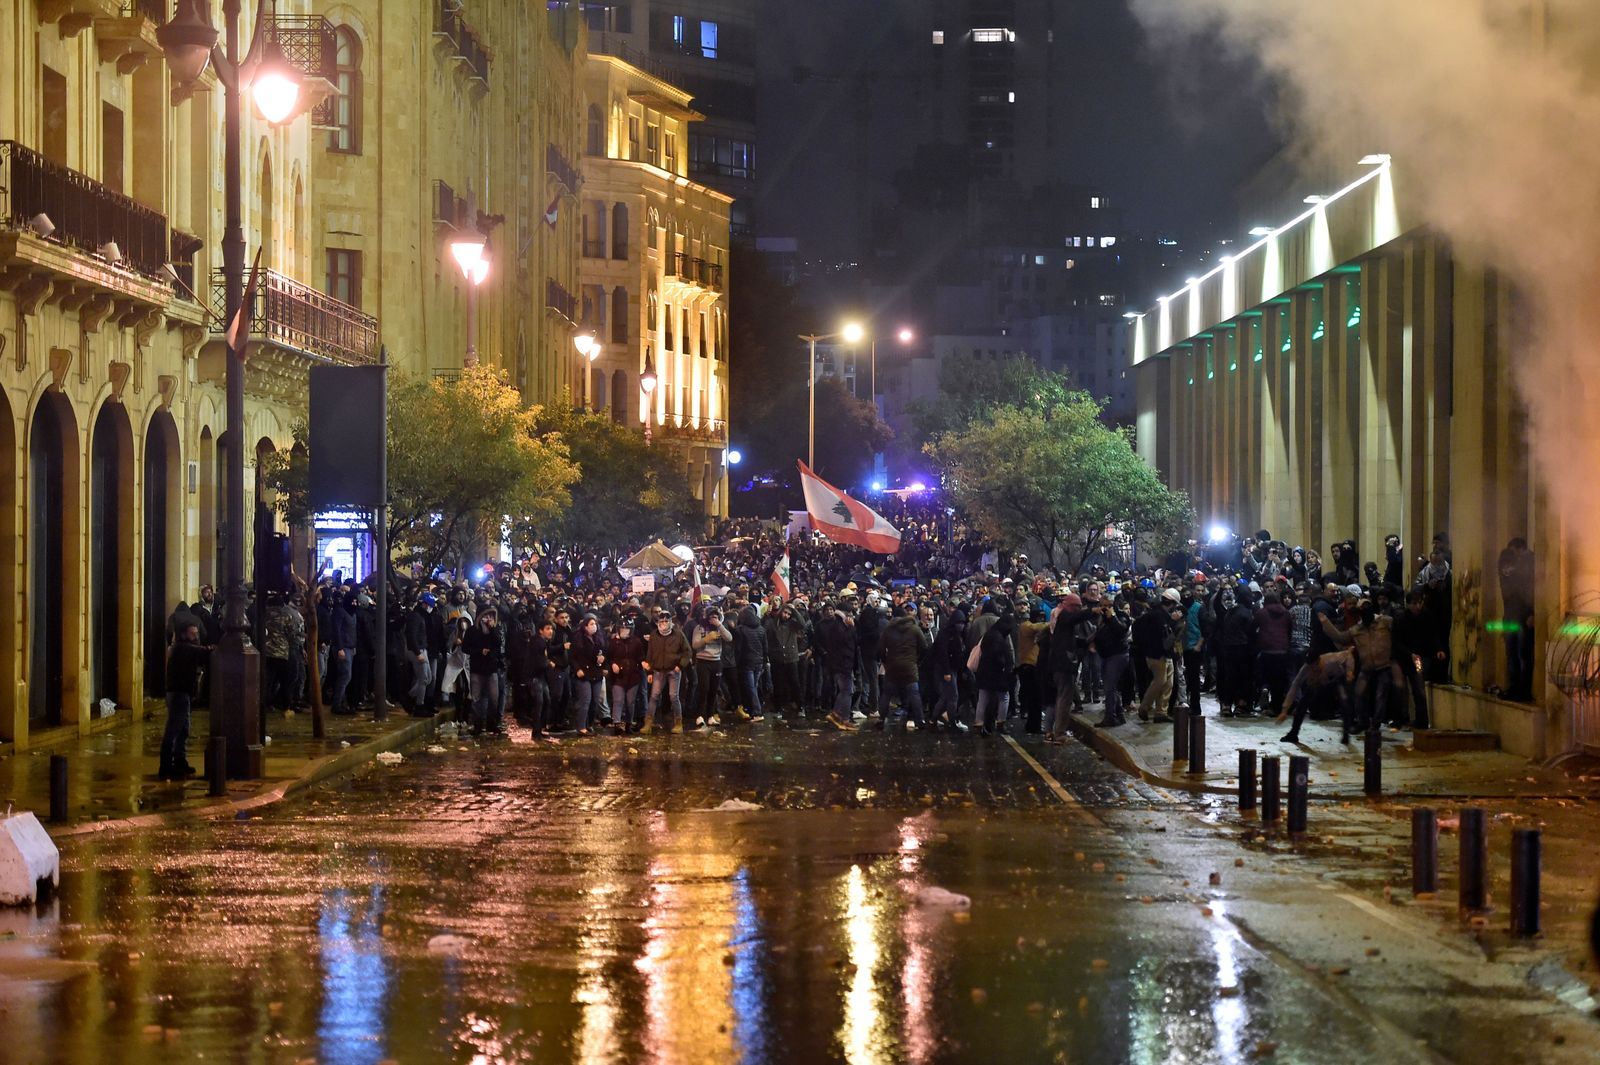 Anti government protests continue in Beirut, Lebanon - 19 Jan 2020